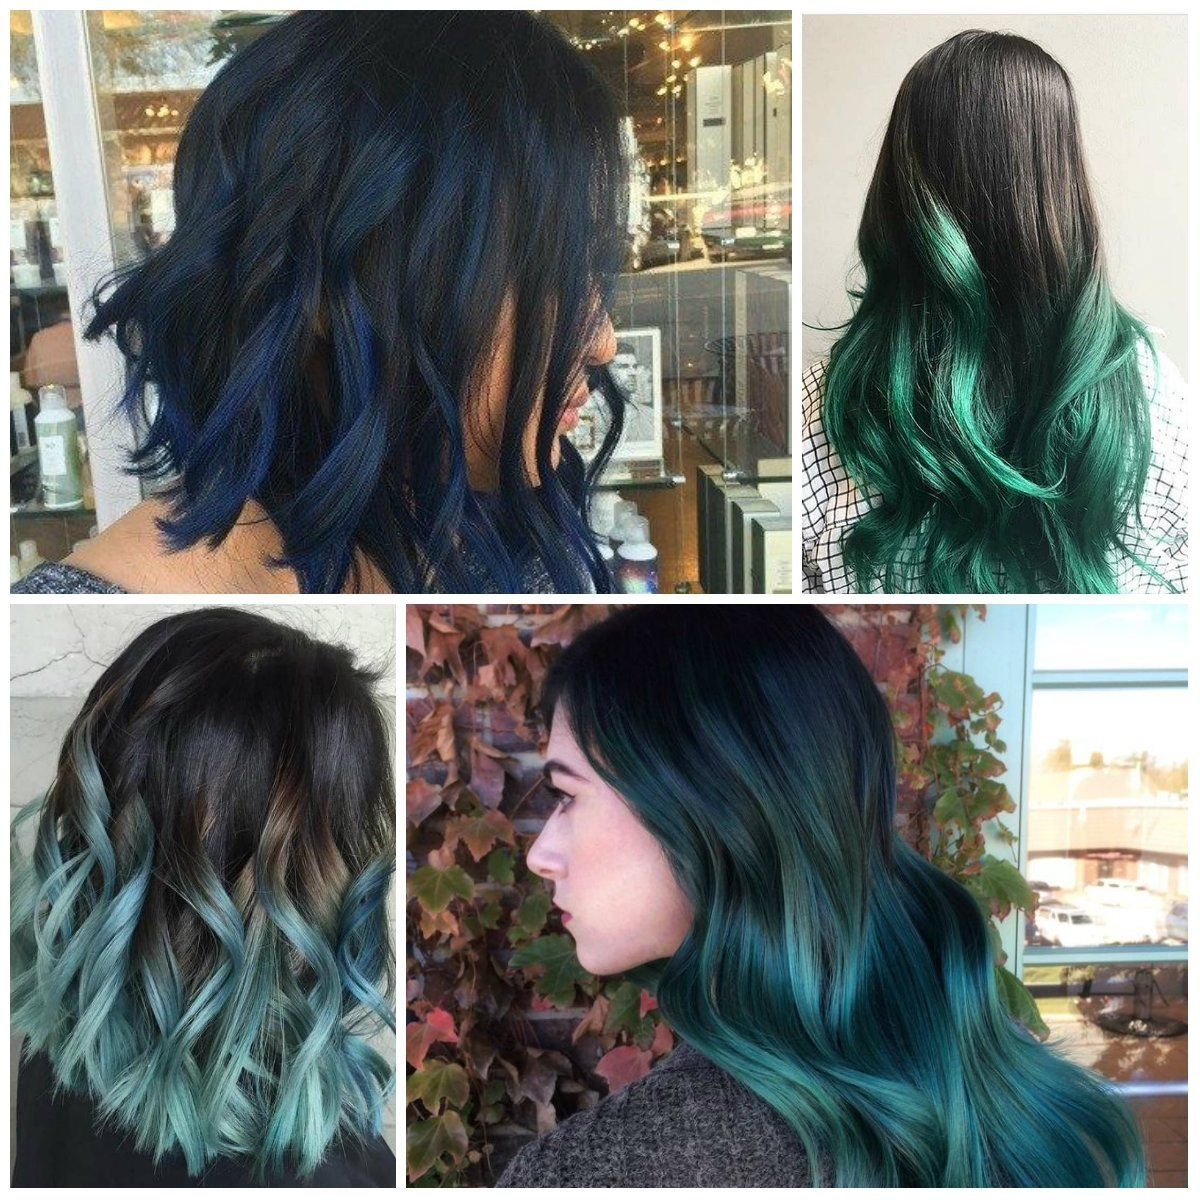 10 Ideal Hair Coloring Ideas For Long Hair ombre best hair color ideas trends in 2017 2018 1 2020